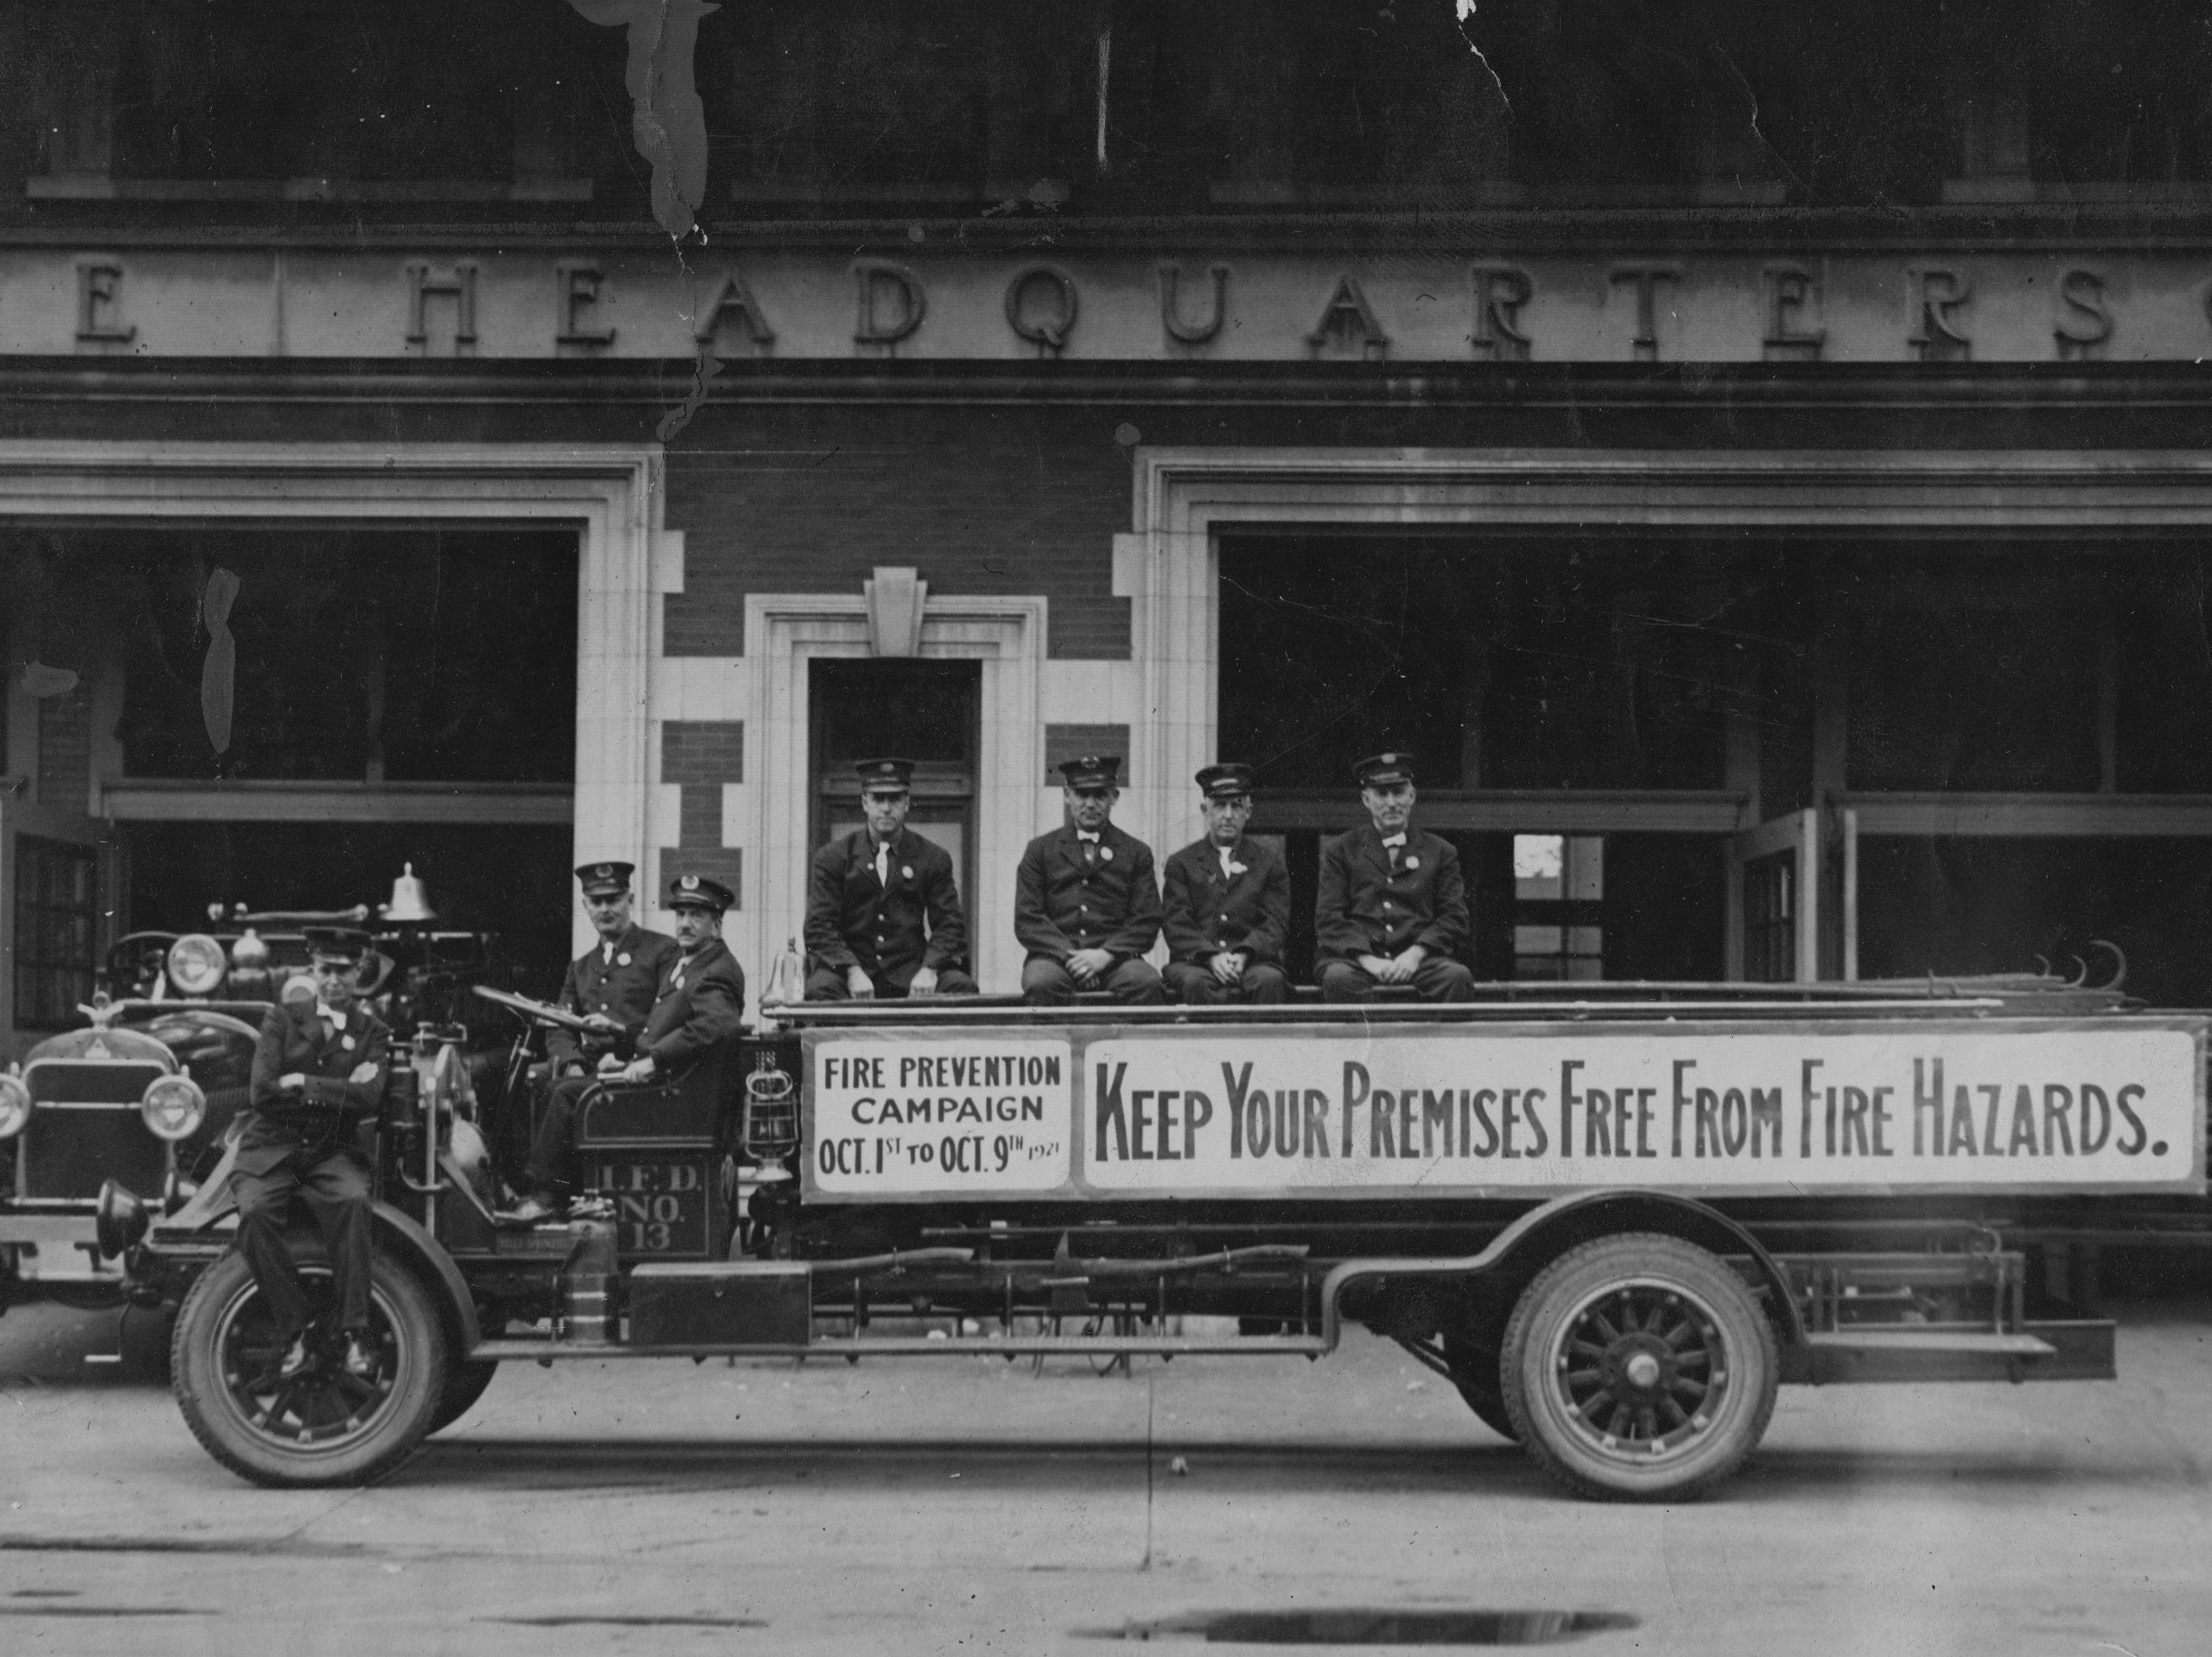 Indianapolis Fire Dept. members during a fire prevention campaign in 1922.  The members are on IFD No. 13, Ladder 7 1915 Kelly/Springfield service truck.